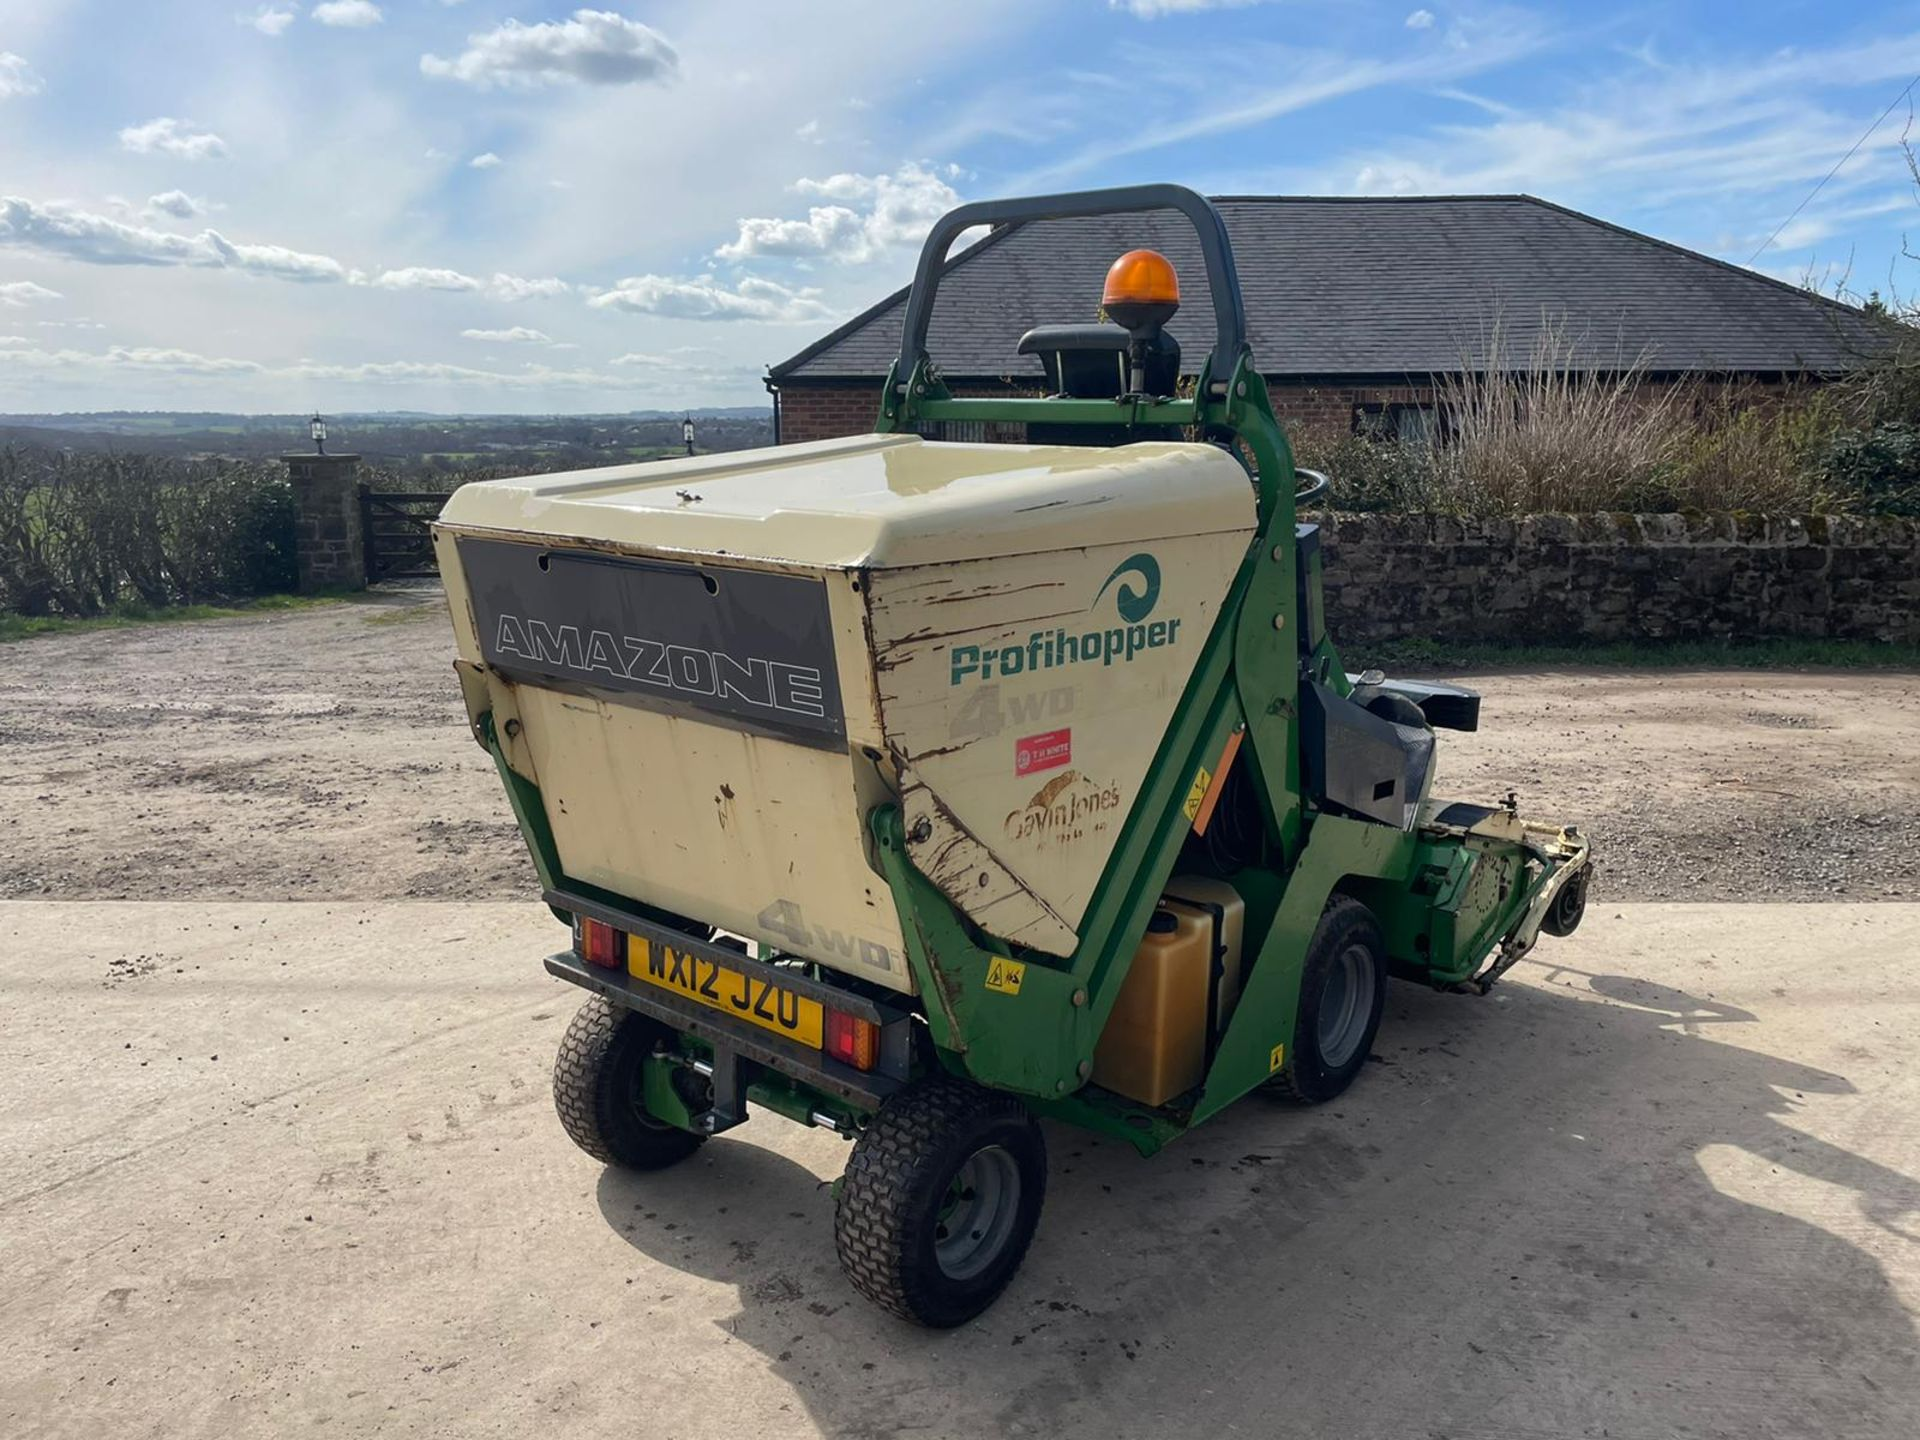 2012 AMAZONE PROFIHOPPER RIDE ON MOWER, RUNS, DRIVES AND CUTS, IN GOOD CONDITION *PLUS VAT* - Image 8 of 14